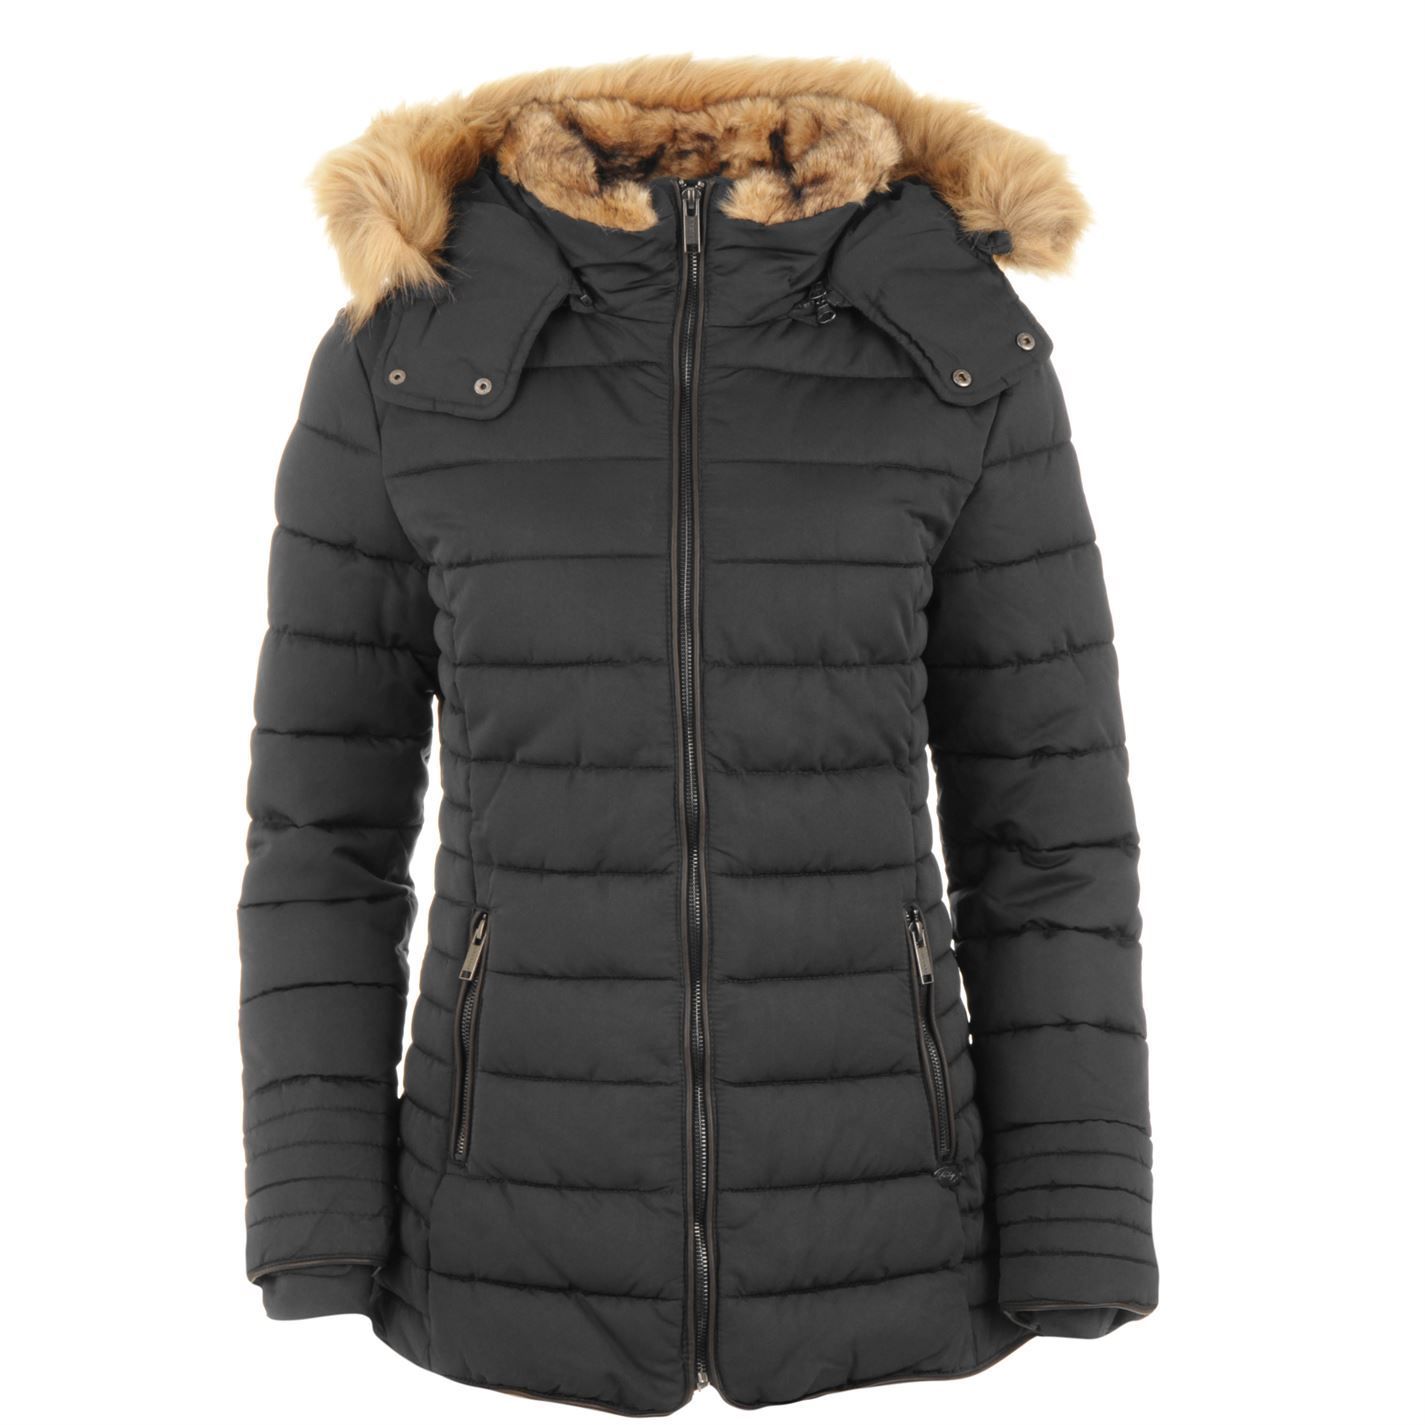 Image is loading Womens-Firetrap-Lux-Bubble-Jacket-Padded-Hooded-New 88f82a166